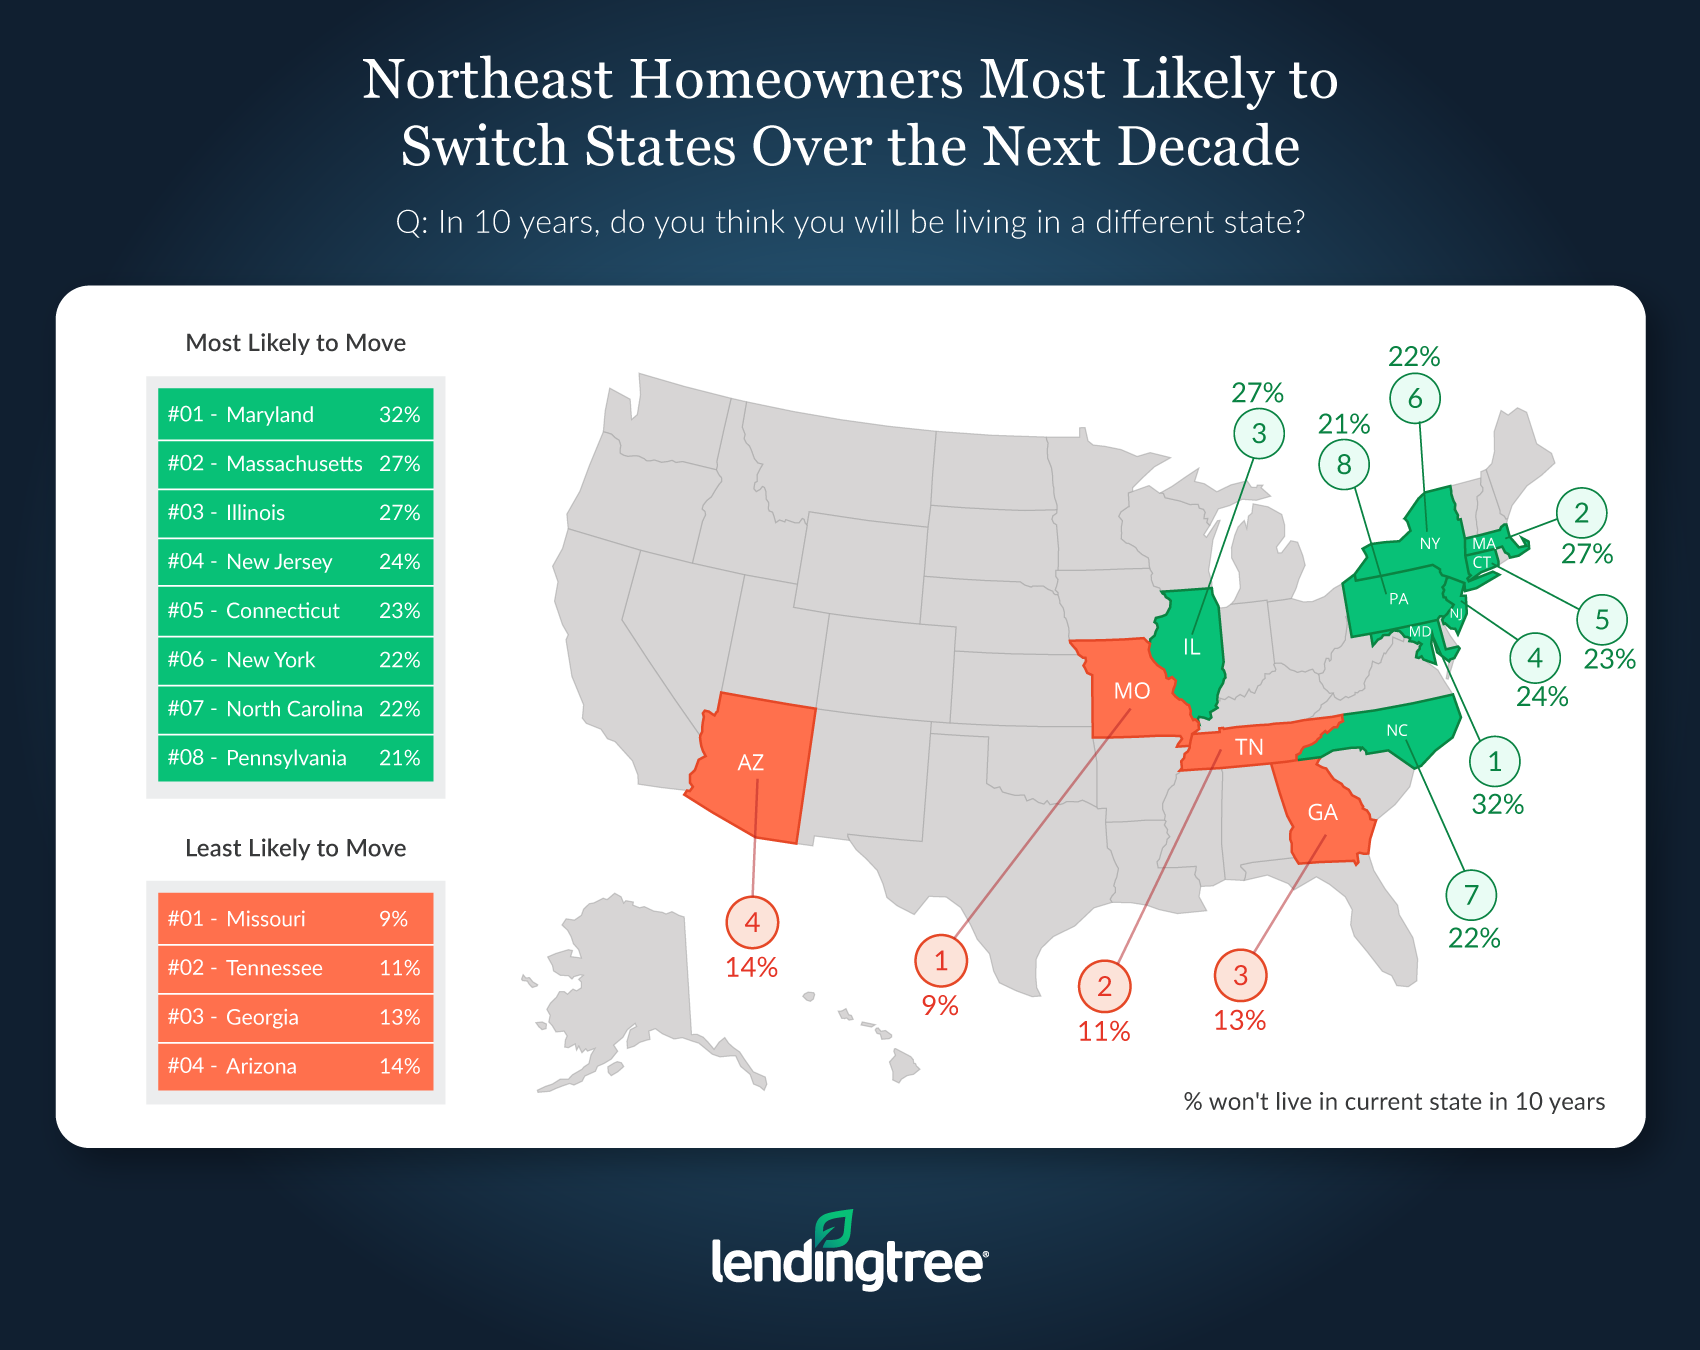 Lendingtree homeowners likely to switch states in 10 years. Visit source link at the end of this article for more information.